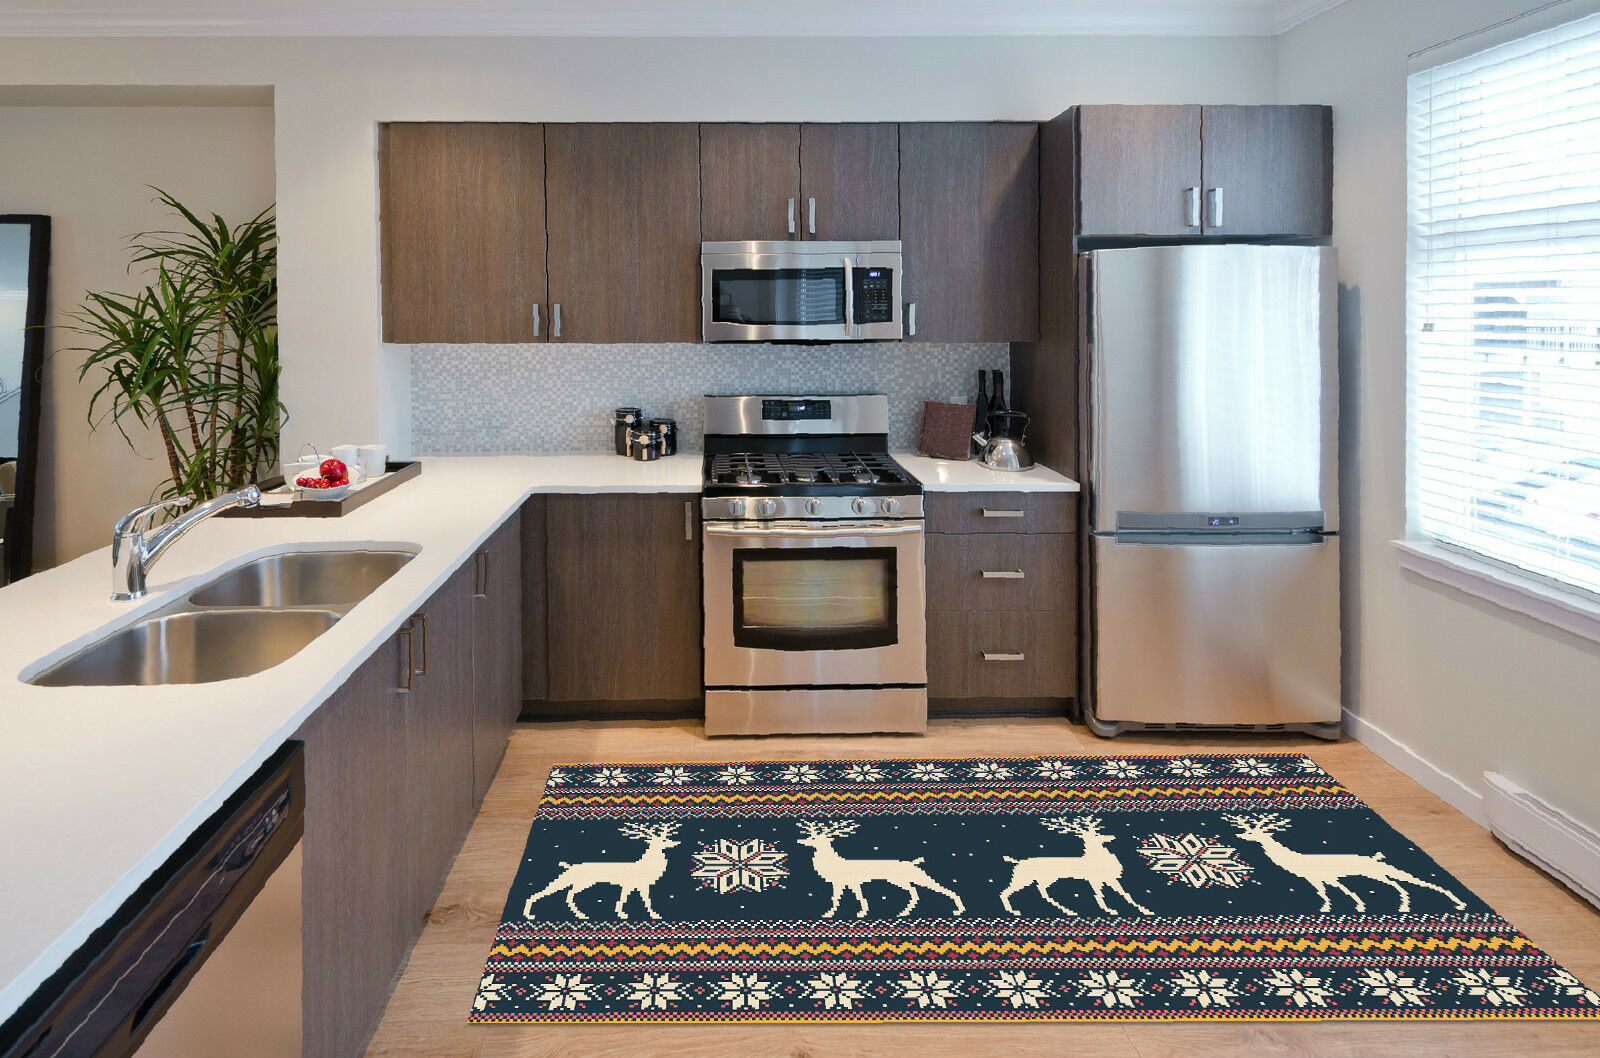 3D Animal Pattern Kitchen Mat Floor Murals Wall Print Wall Deco AJ WALLPAPER CA